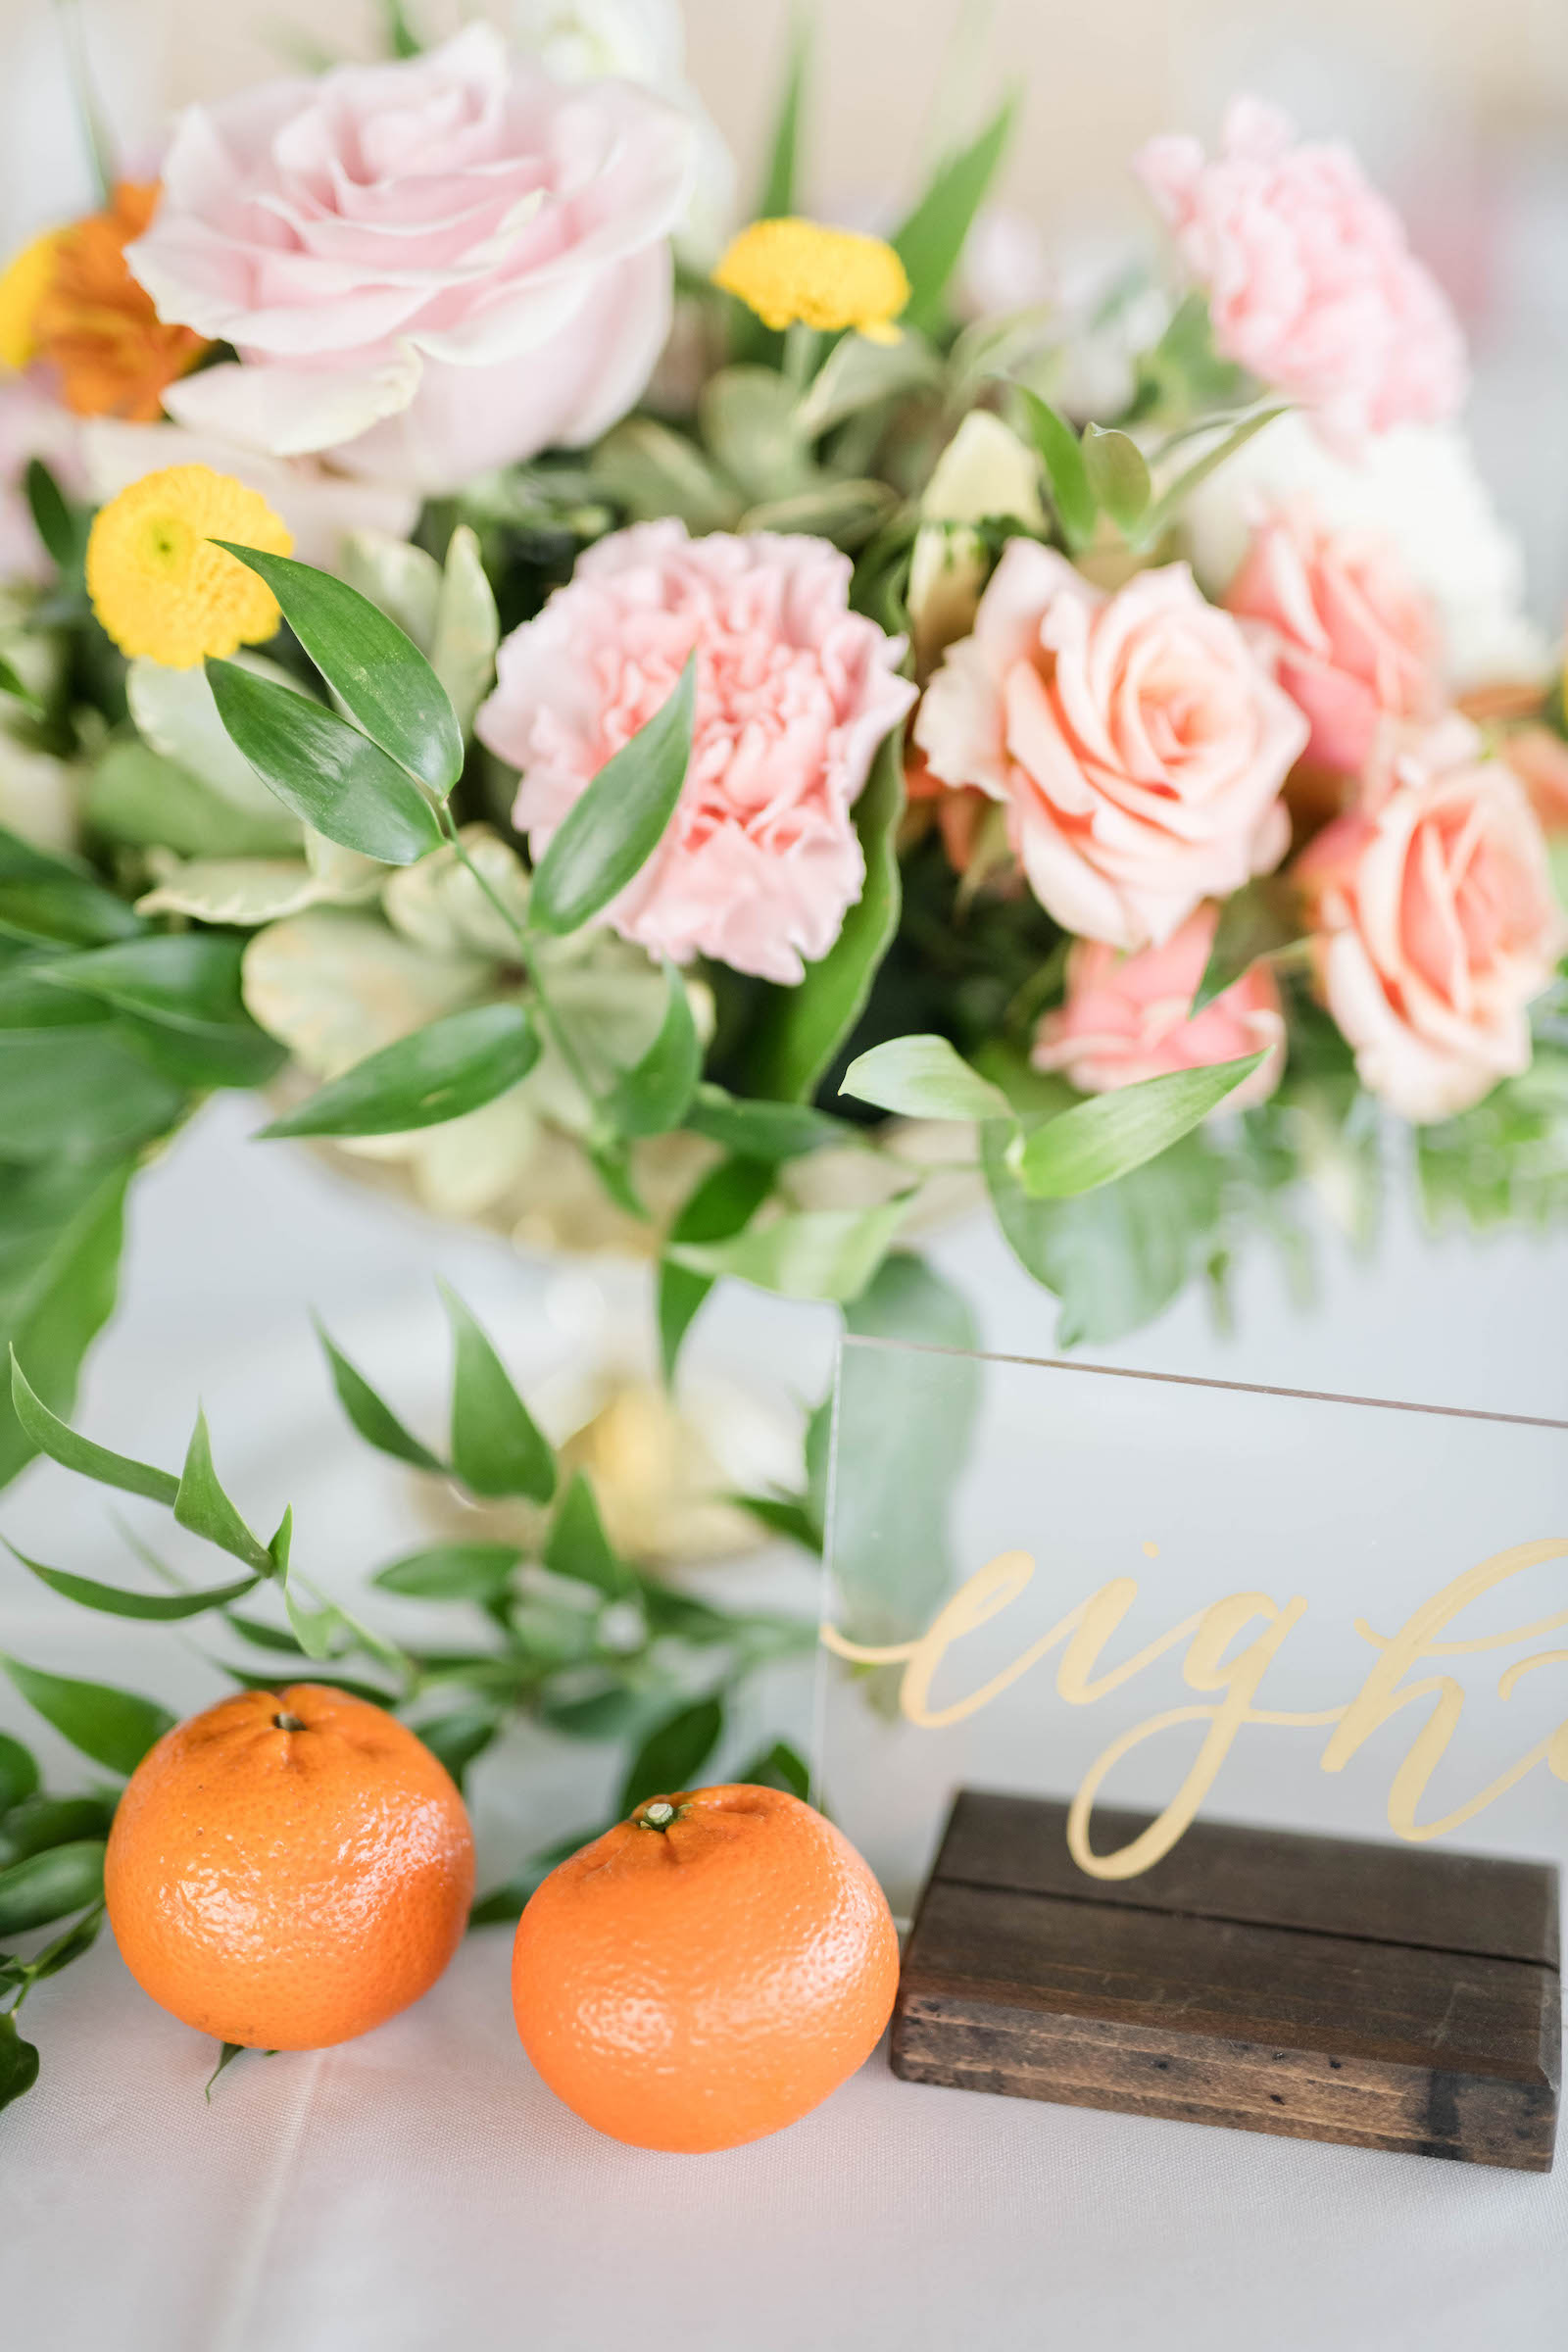 Tropical Wedding Reception Decor, Tangerine Oranges, Acrylic and Gold Script Table Number, Colorful Floral Bouquet with Pink, White and Orange Flowers | Tampa Bay Wedding Planner Coastal Coordinating